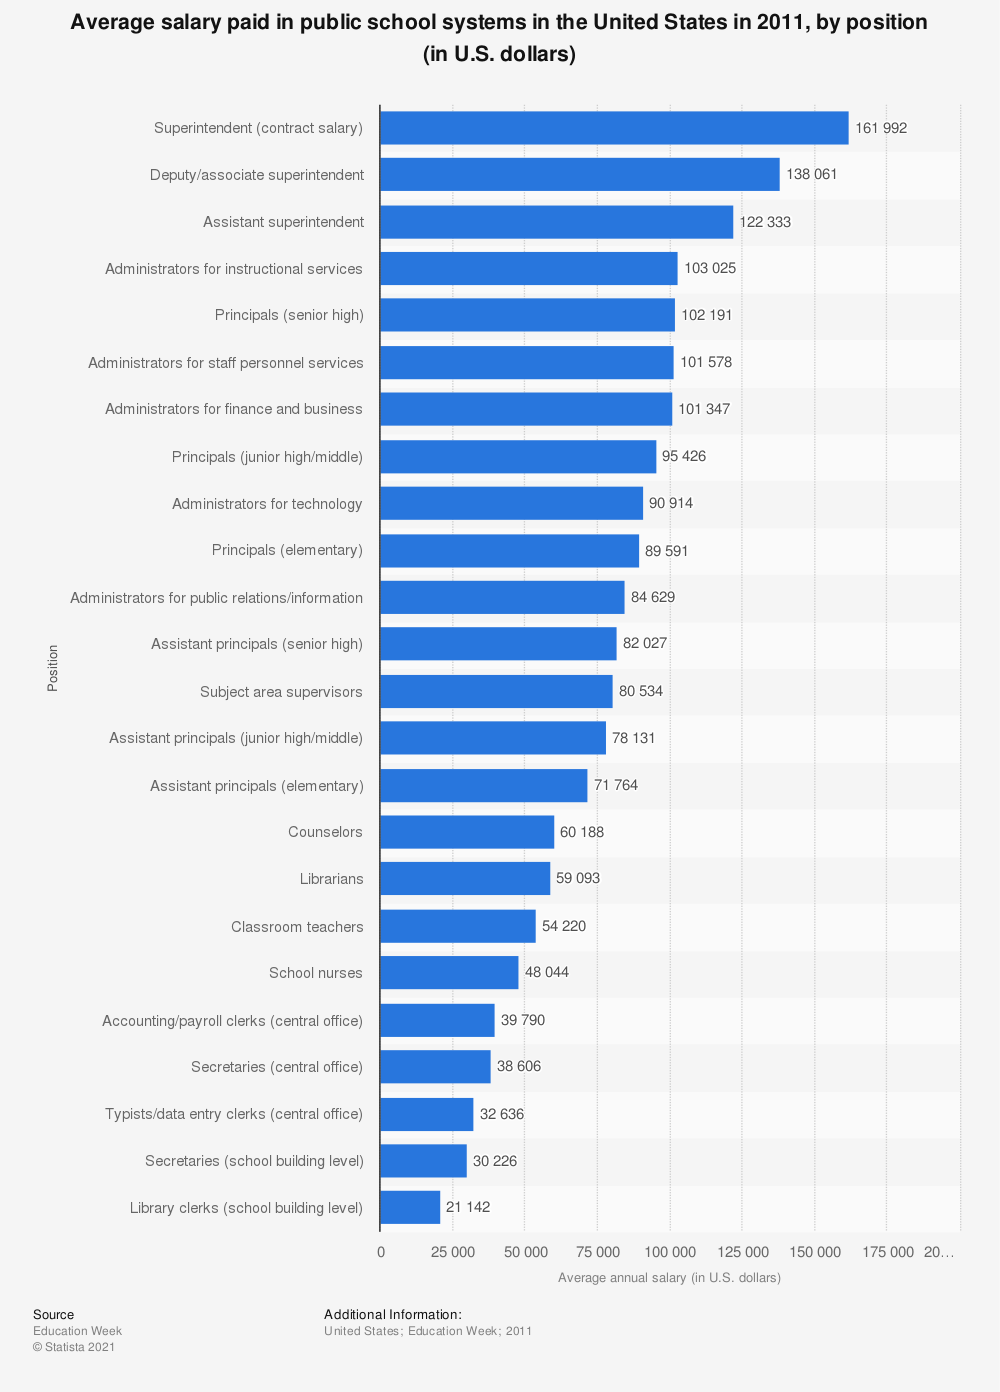 Statistic: Average salary paid in public school systems in the United States in 2011, by position (in U.S. dollars) | Statista